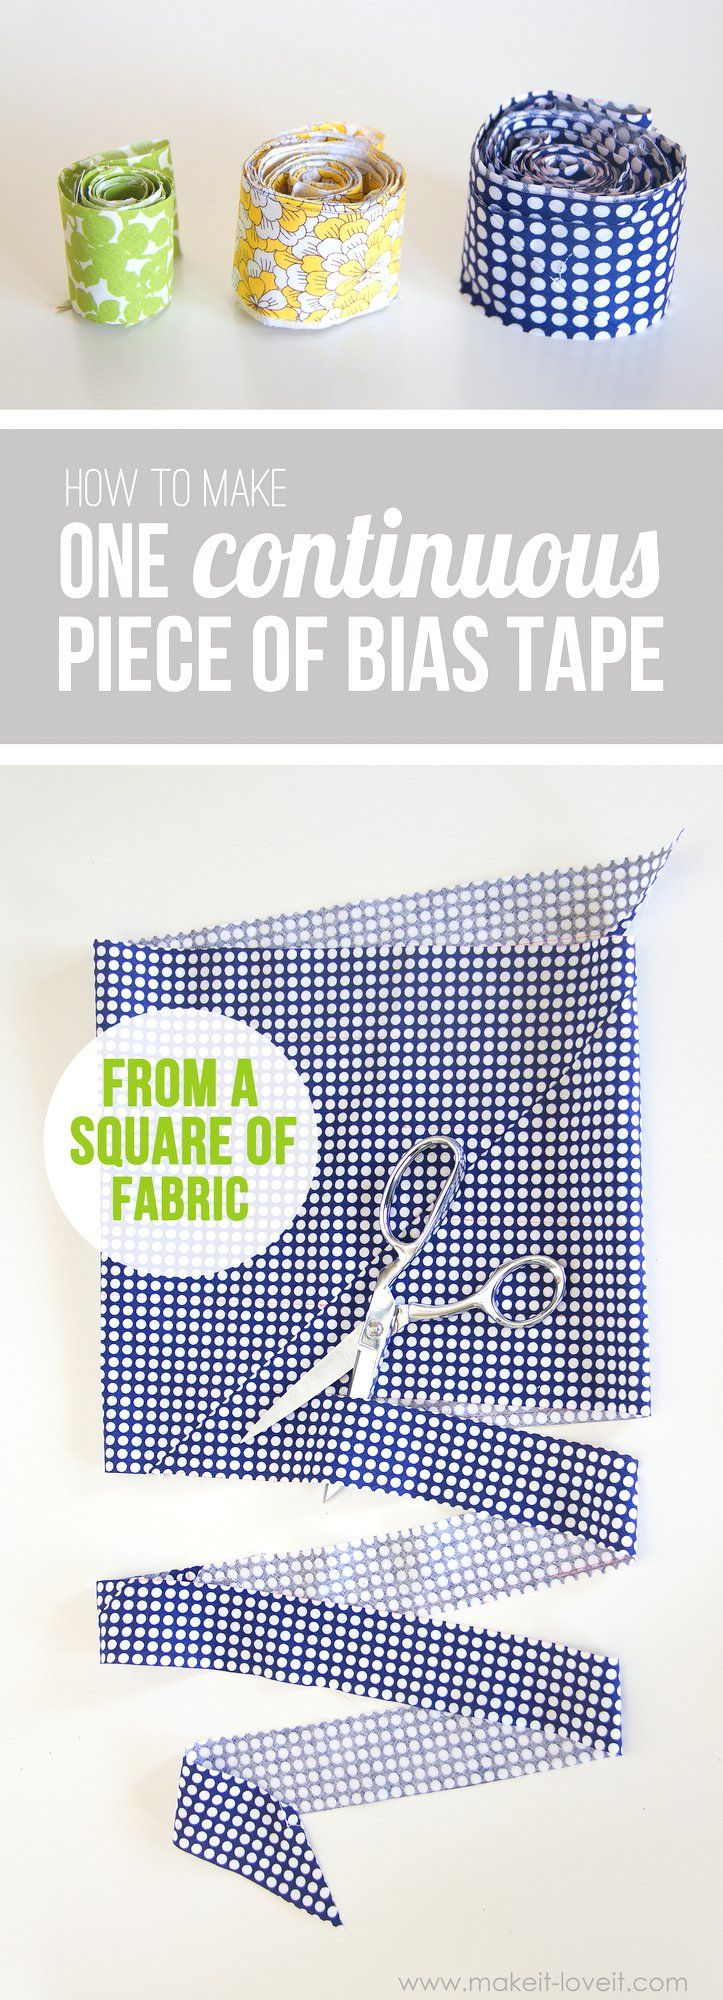 Cut a CONTINUOUS strip of BIAS TAPE (from one square of fabric)   Ooooh, today I have a sewing tip for you……and it's pretty darn cool! Also, it'll save you some money (less fabric waste) and make your